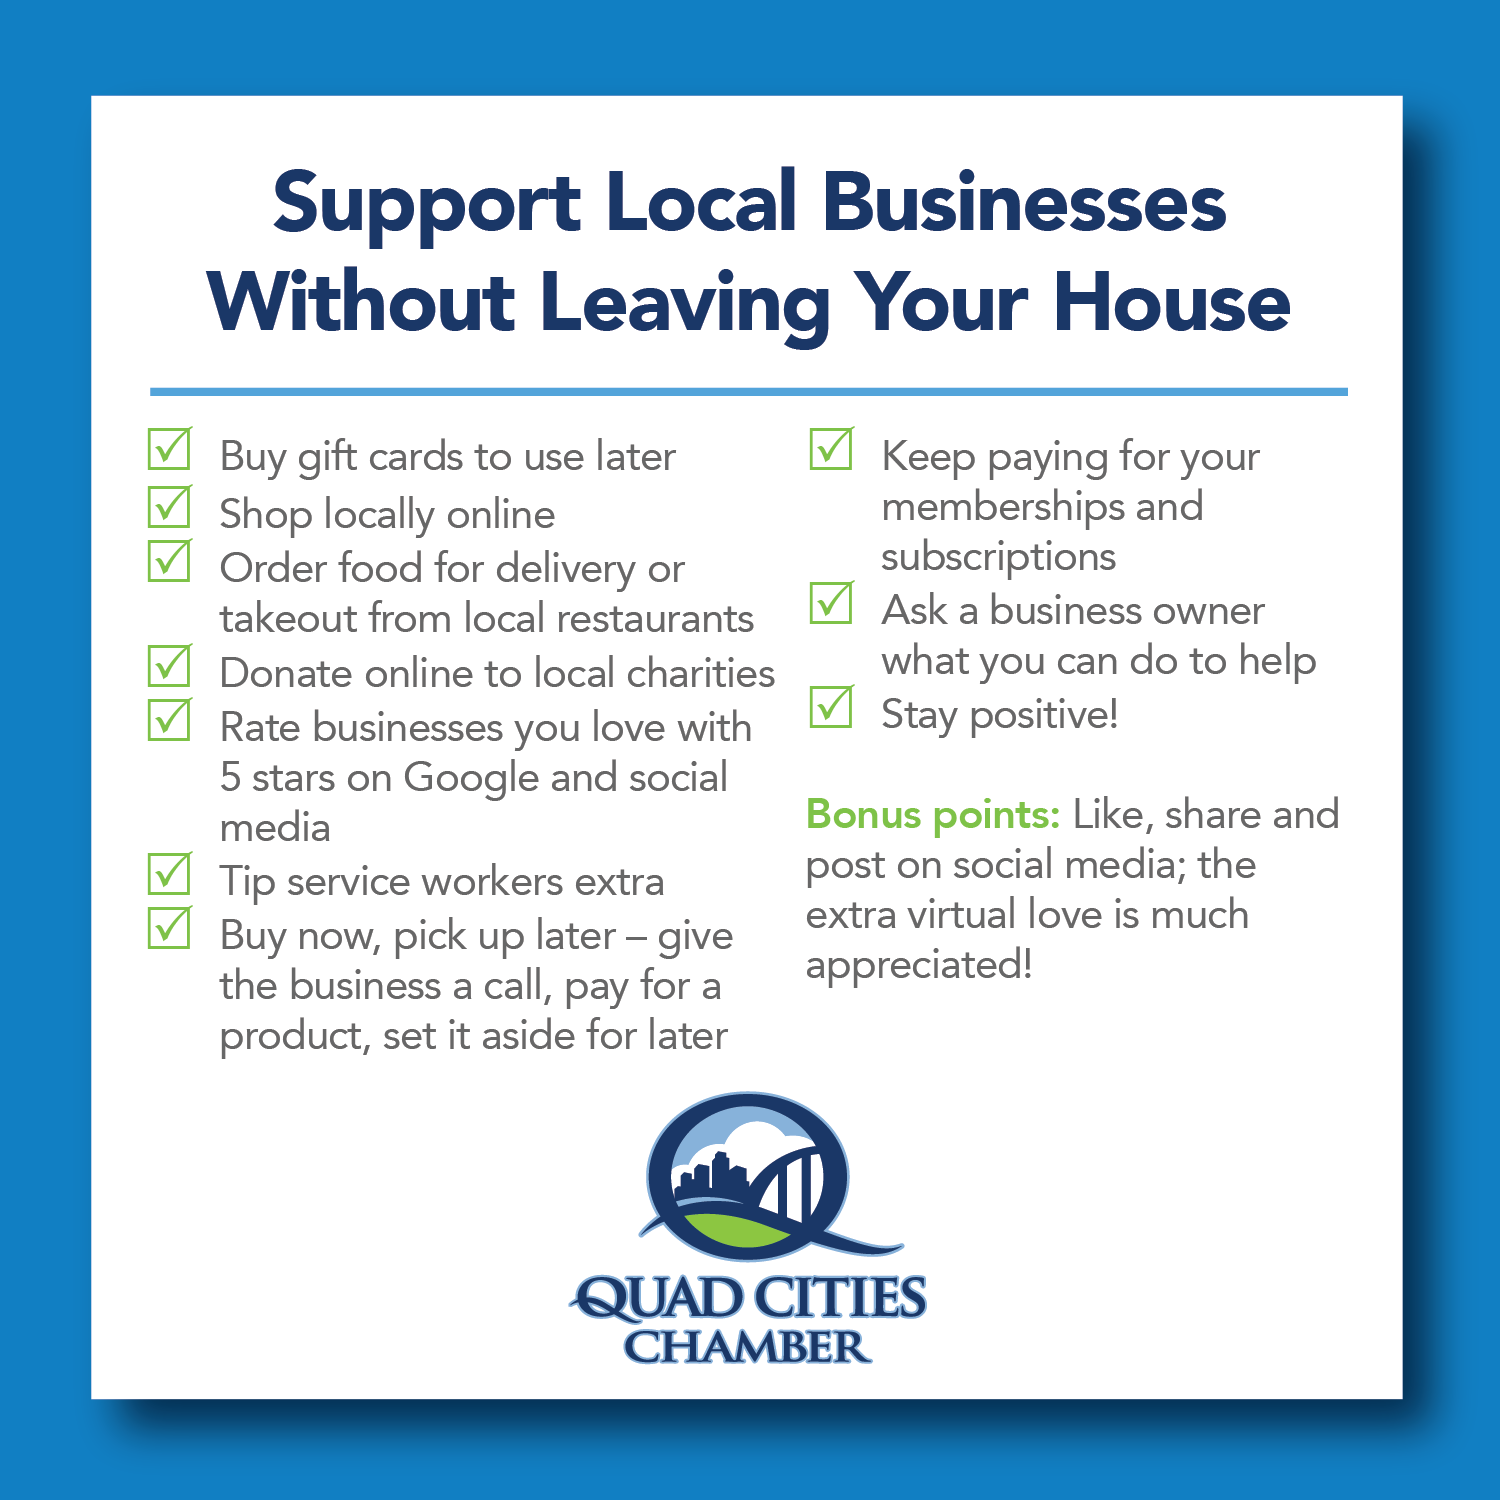 Quad Cities Chamber graphic.png